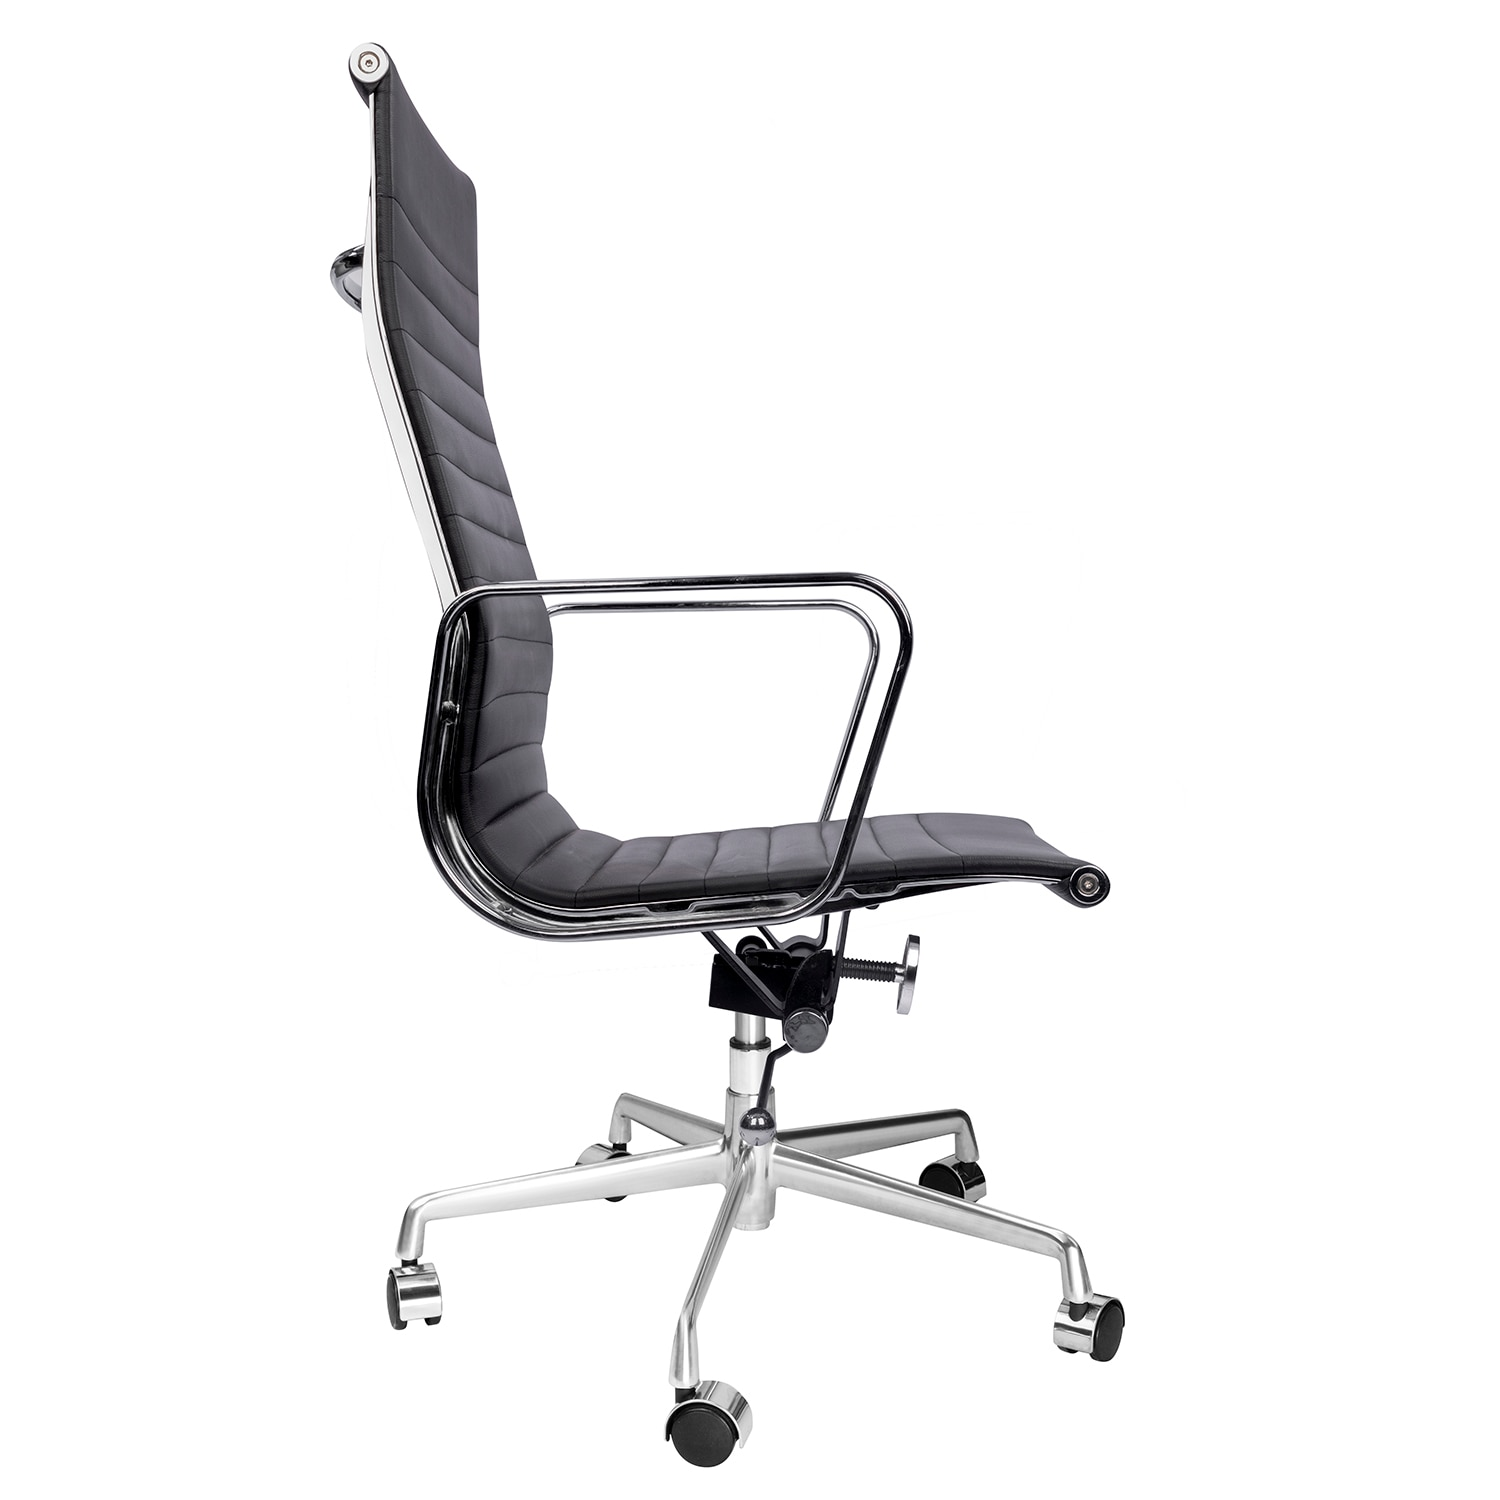 H3f39d093ed5b49ca9fe274045f6c9c5ai - High Back Aluminium Group Office Chair Replica Swivel Chair with Armrests Chromed Base Gaming Chair for Office Meeting Room